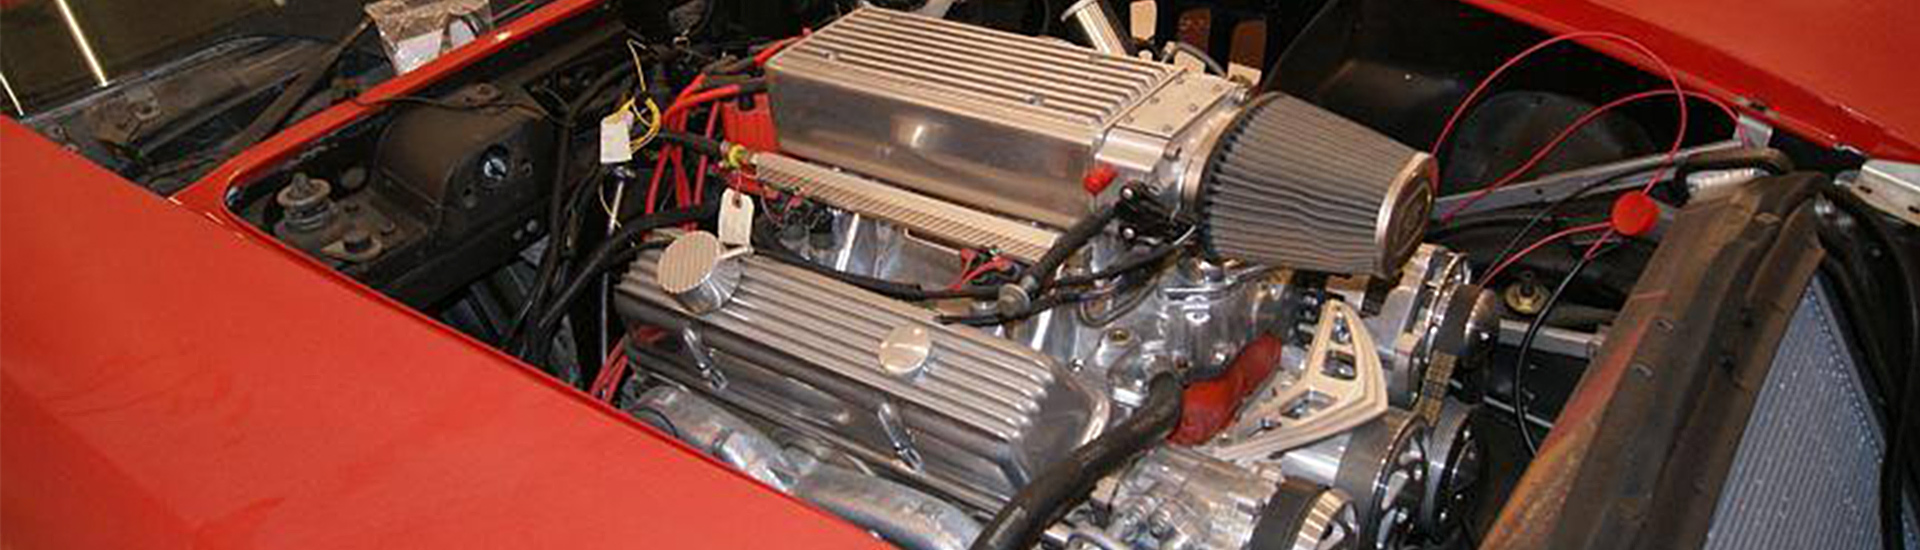 Engine with Air Filter in Red Corvette